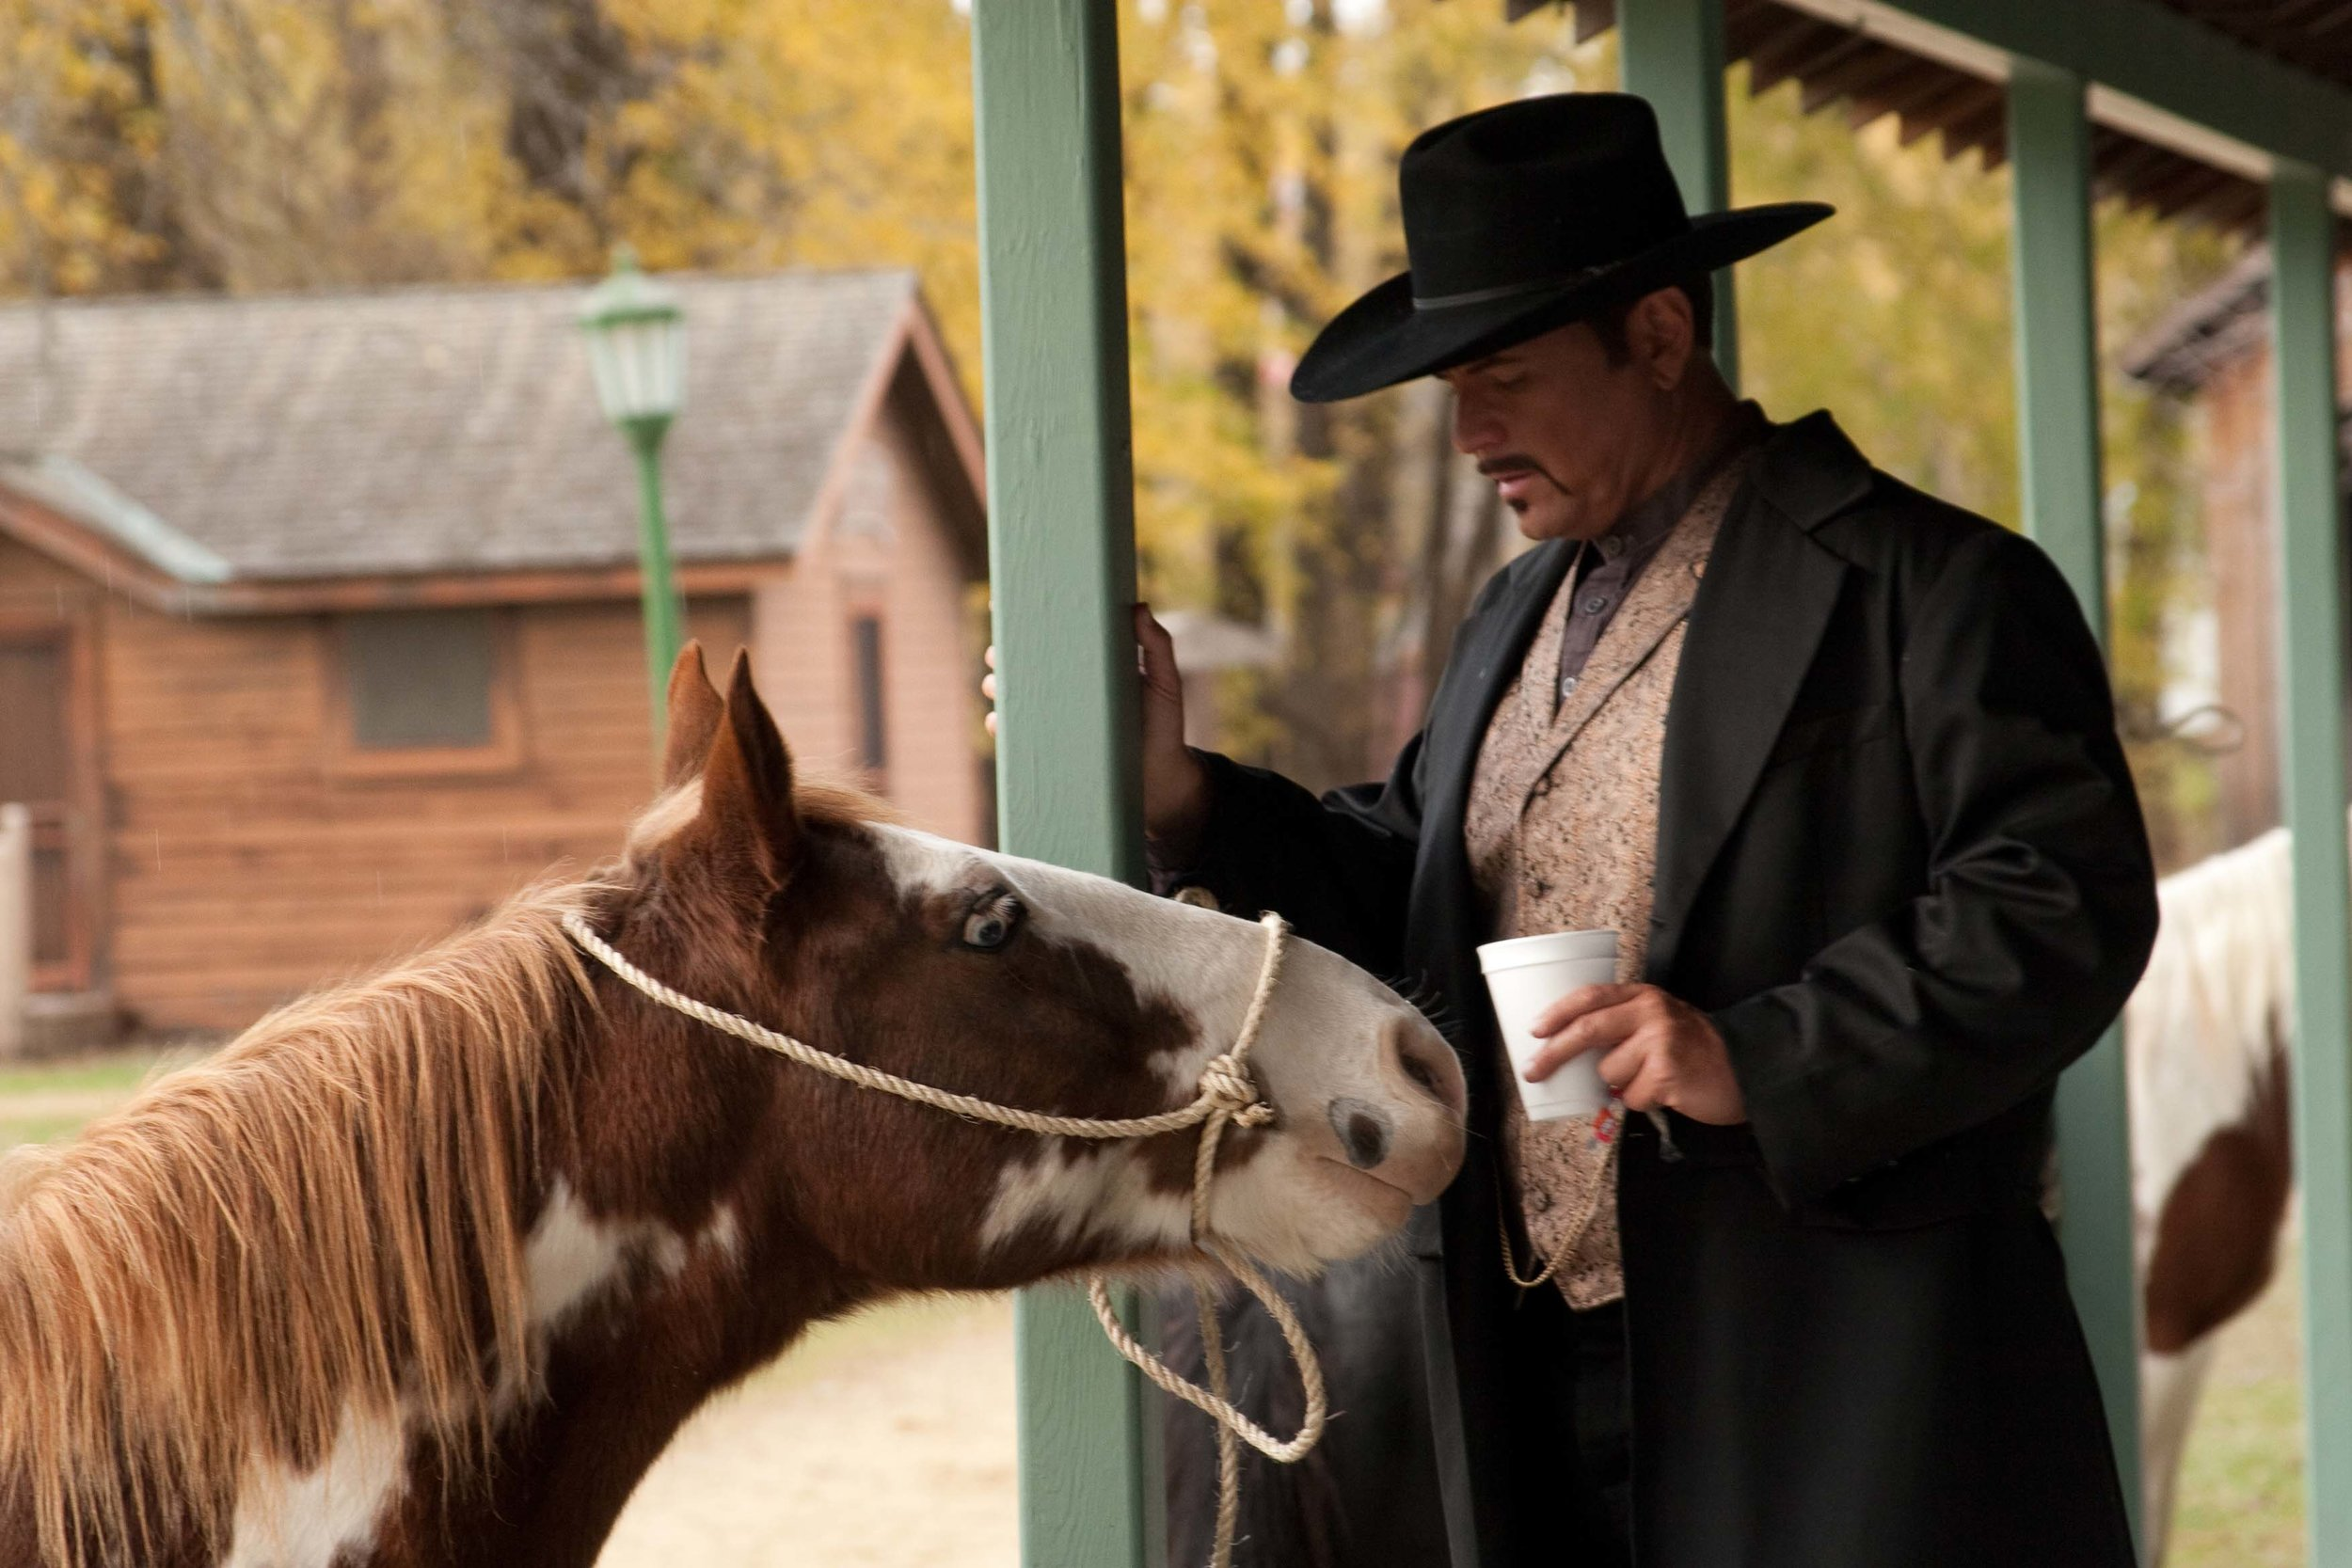 dan-davies-henry-seed-relaxing-with-a-horse.jpg